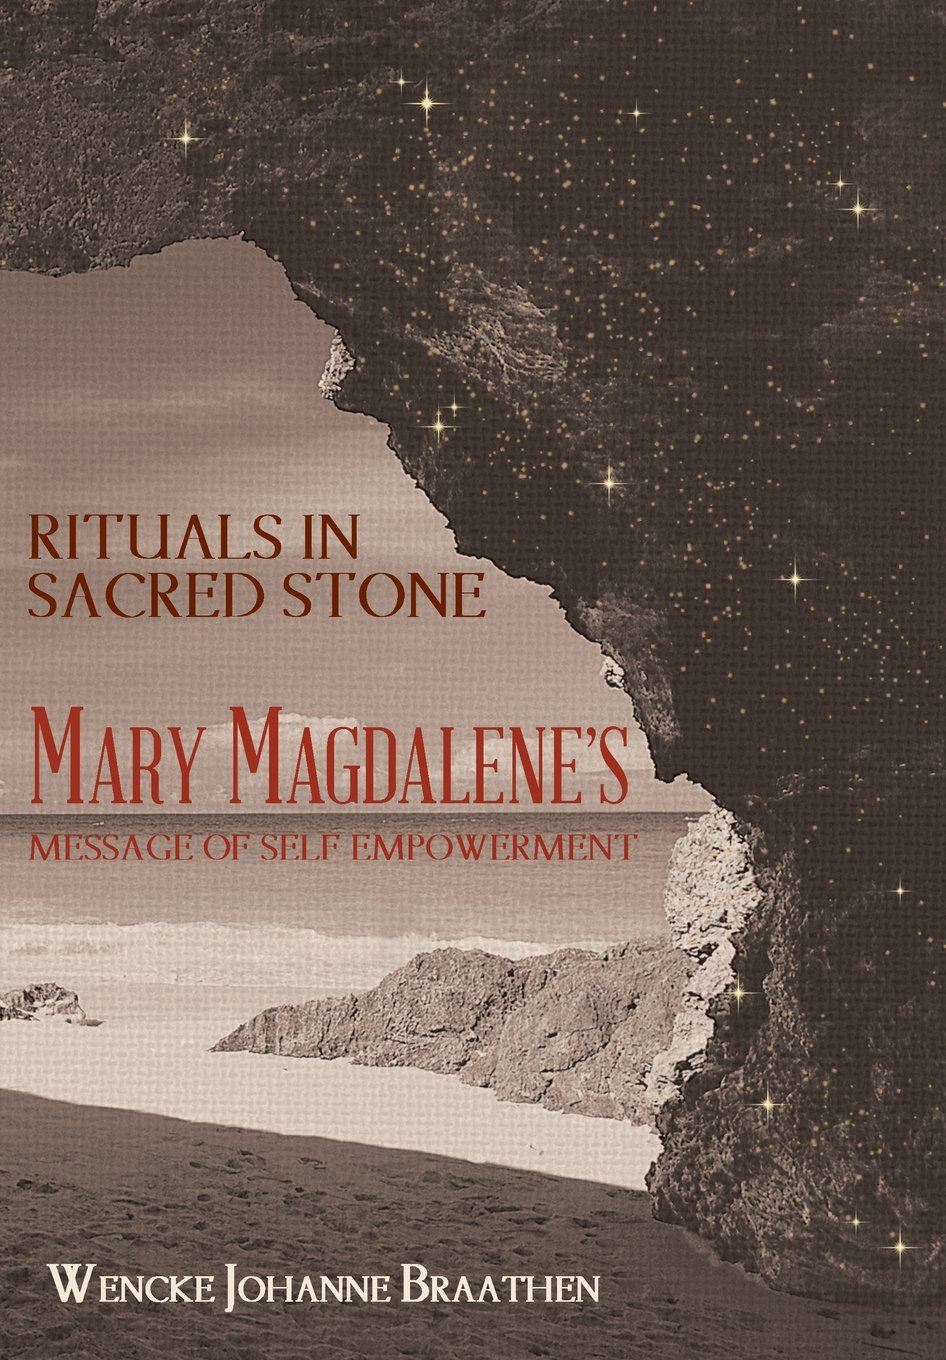 Read Online Rituals in Sacred Stone: Mary Magdalene's Message of Self Empowerment. pdf